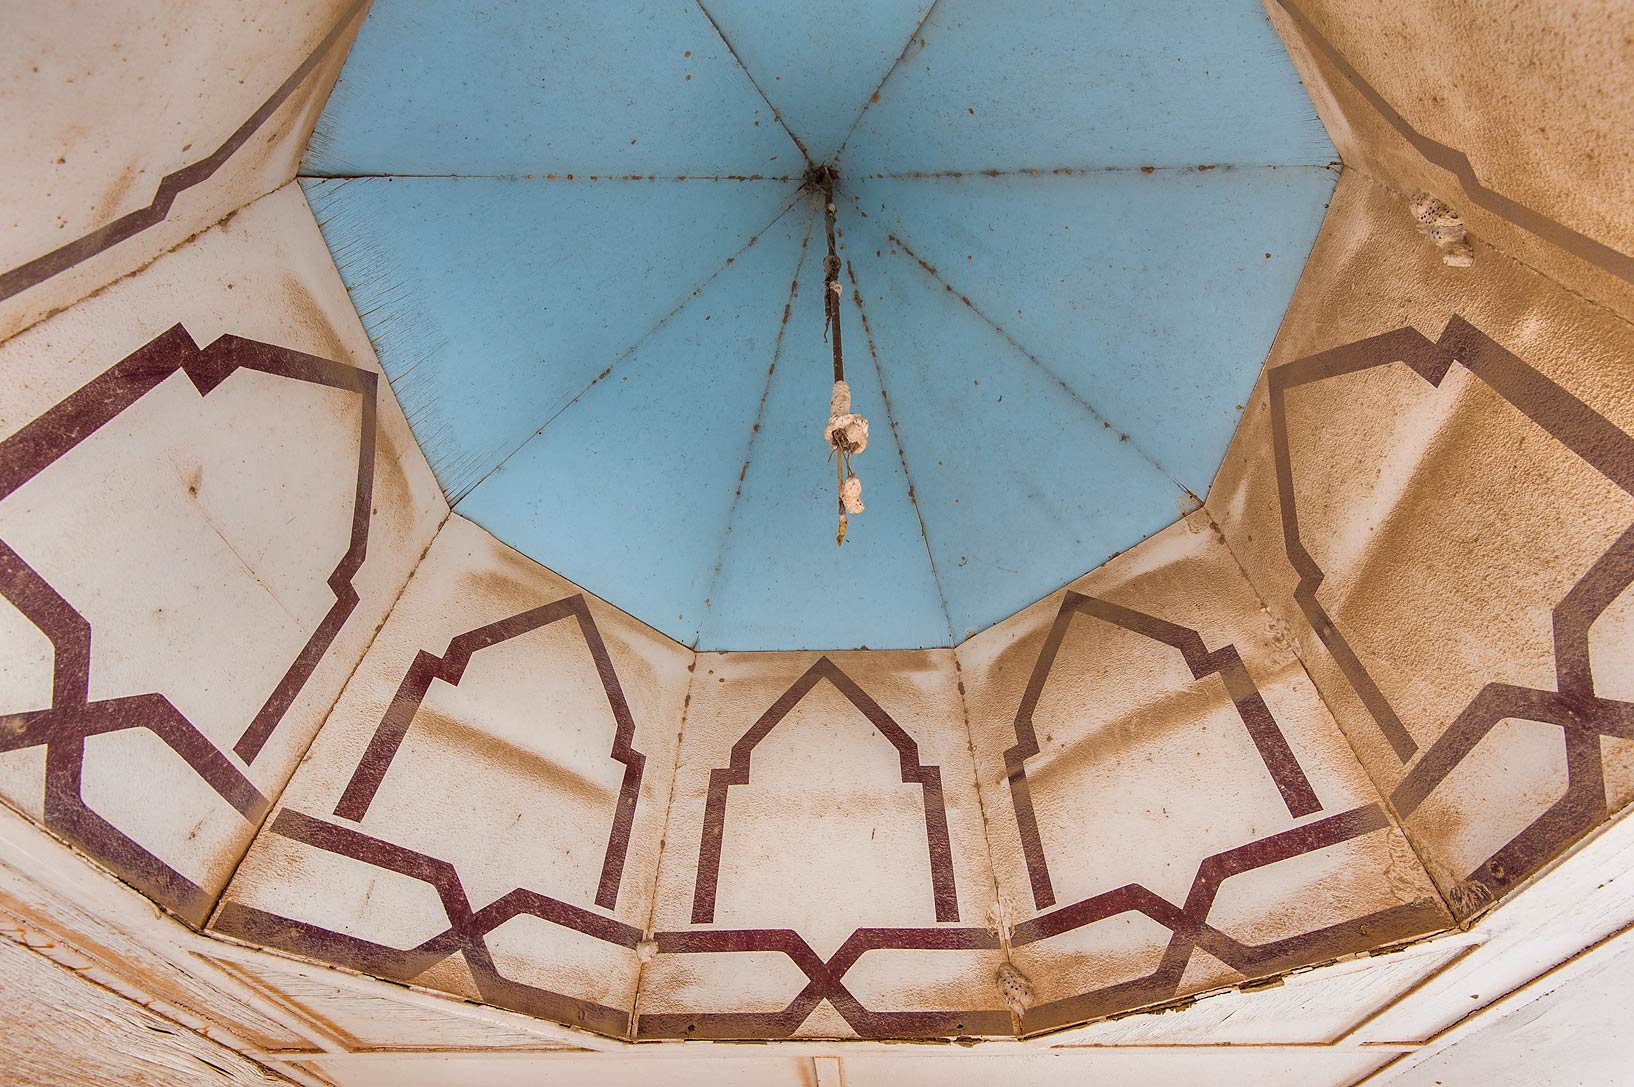 Blue dome and traces of a chandelier in a plywood...jail ponds (sewage lagoons). Qatar